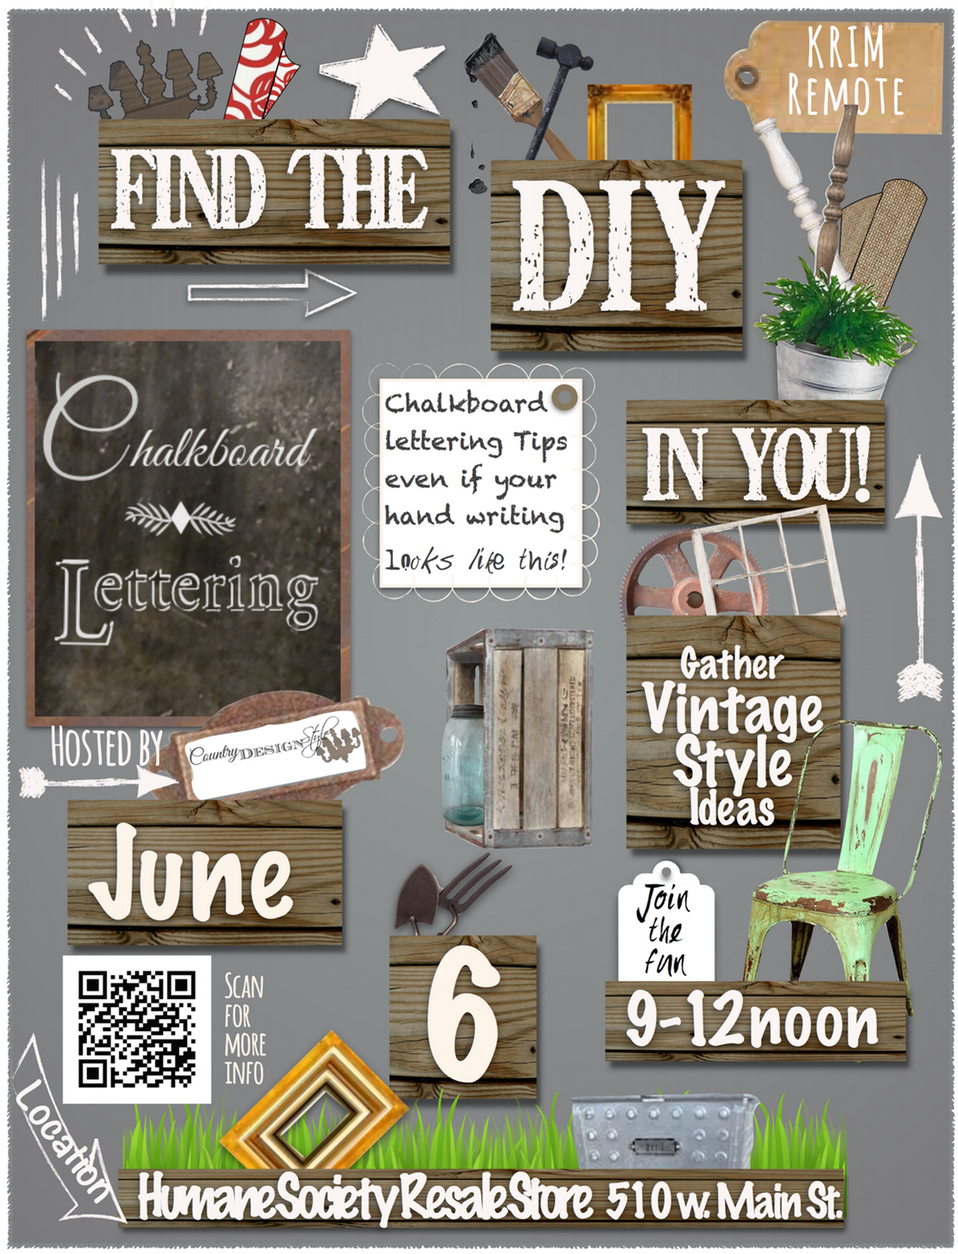 My local DIY event where we learned tips and trick for chalkboard lettering and ideas for thrift decorating and finds.  Country Design Style